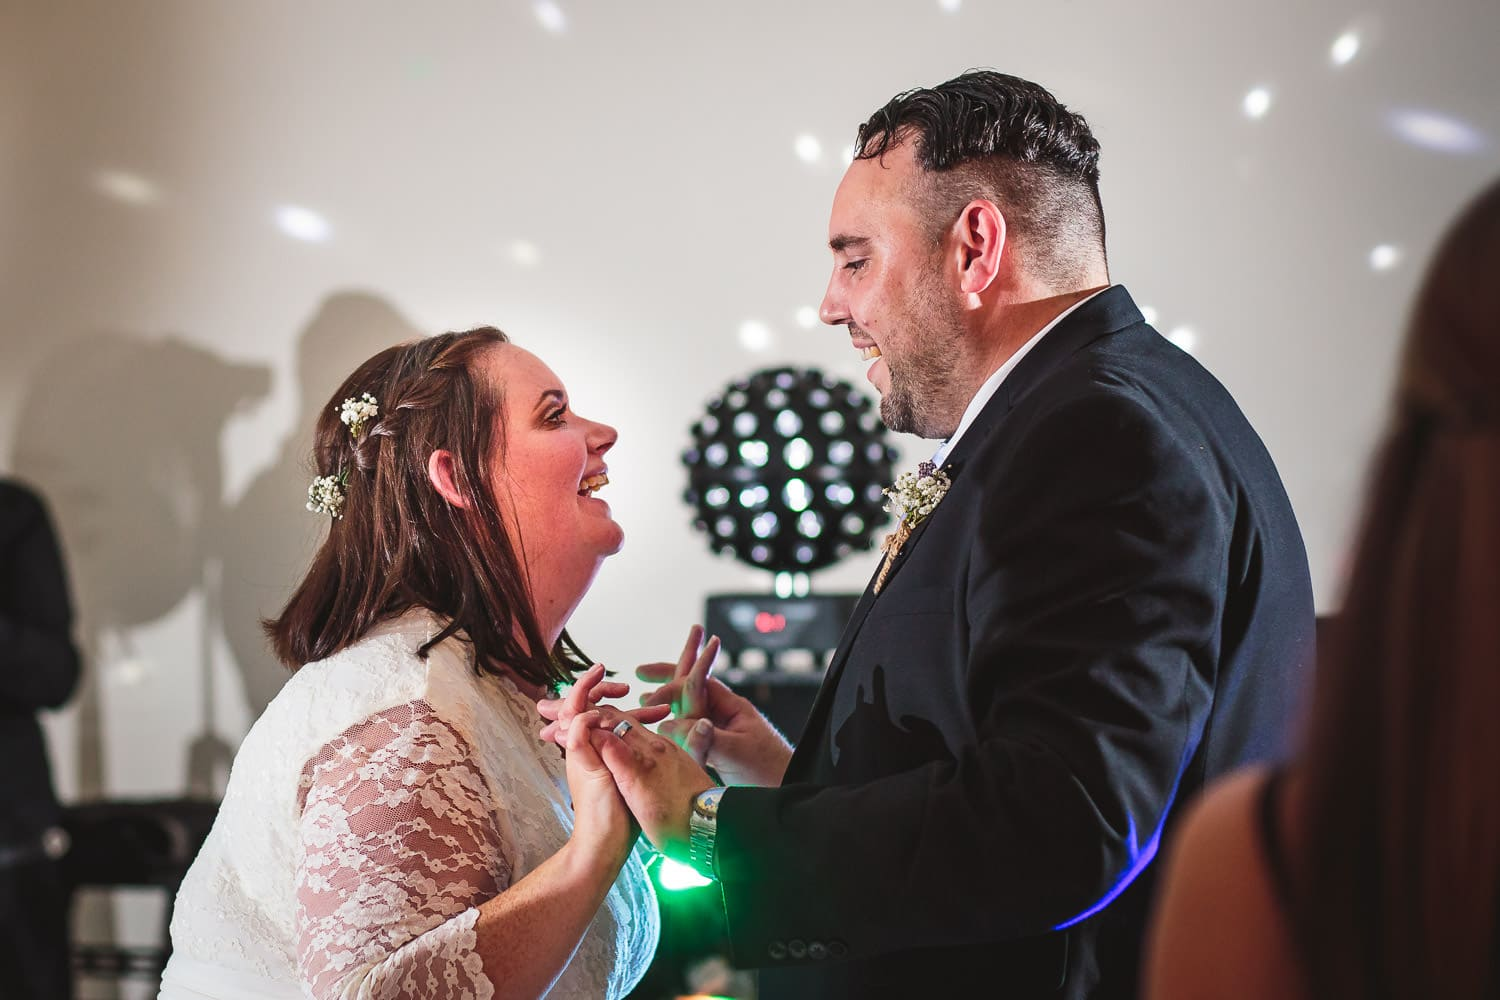 warwickshire newlyweds dance during reception at warwick house wedding